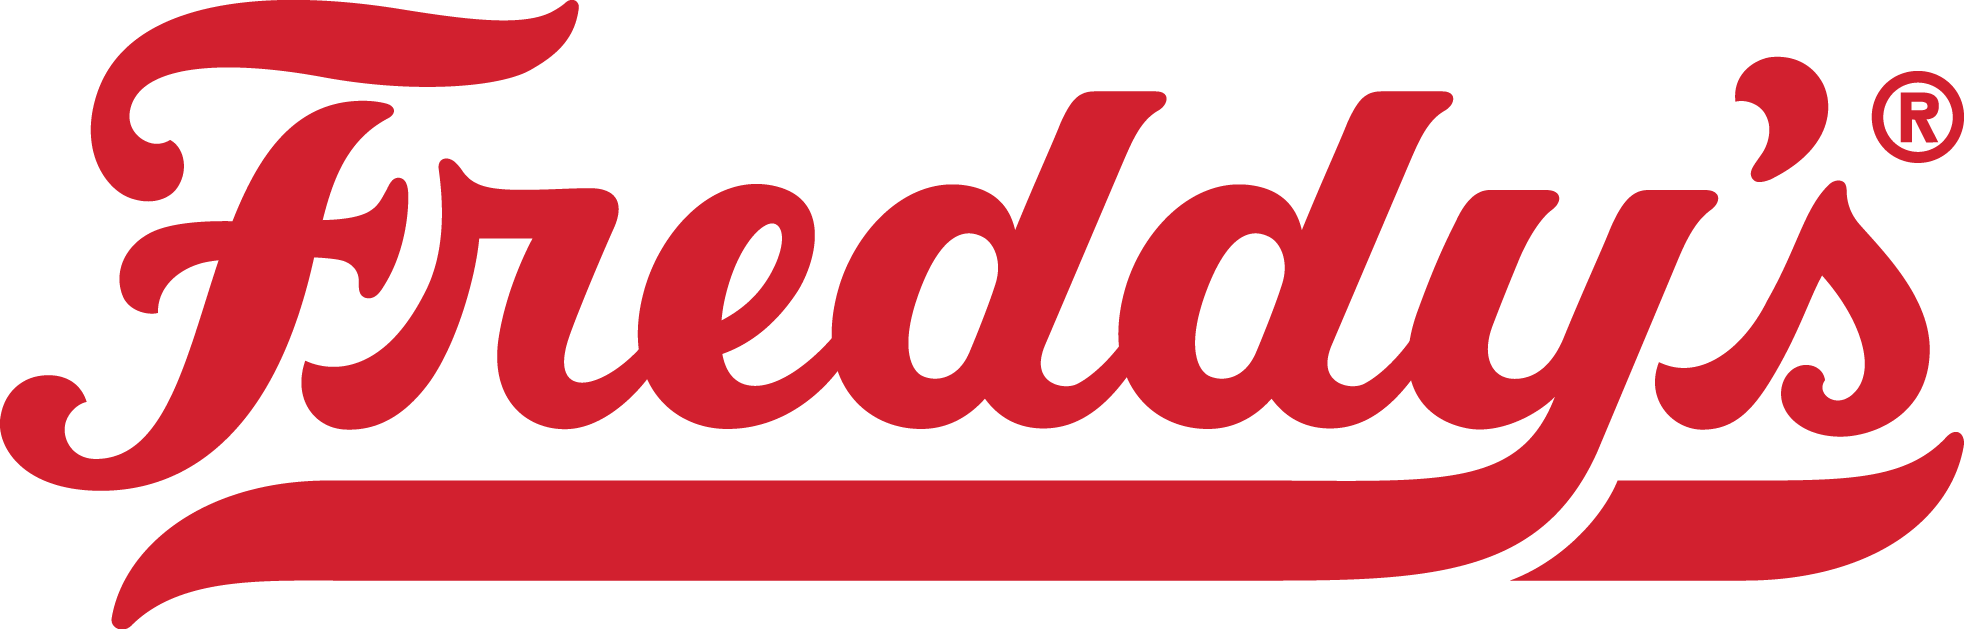 Freddy's Secondary Logo